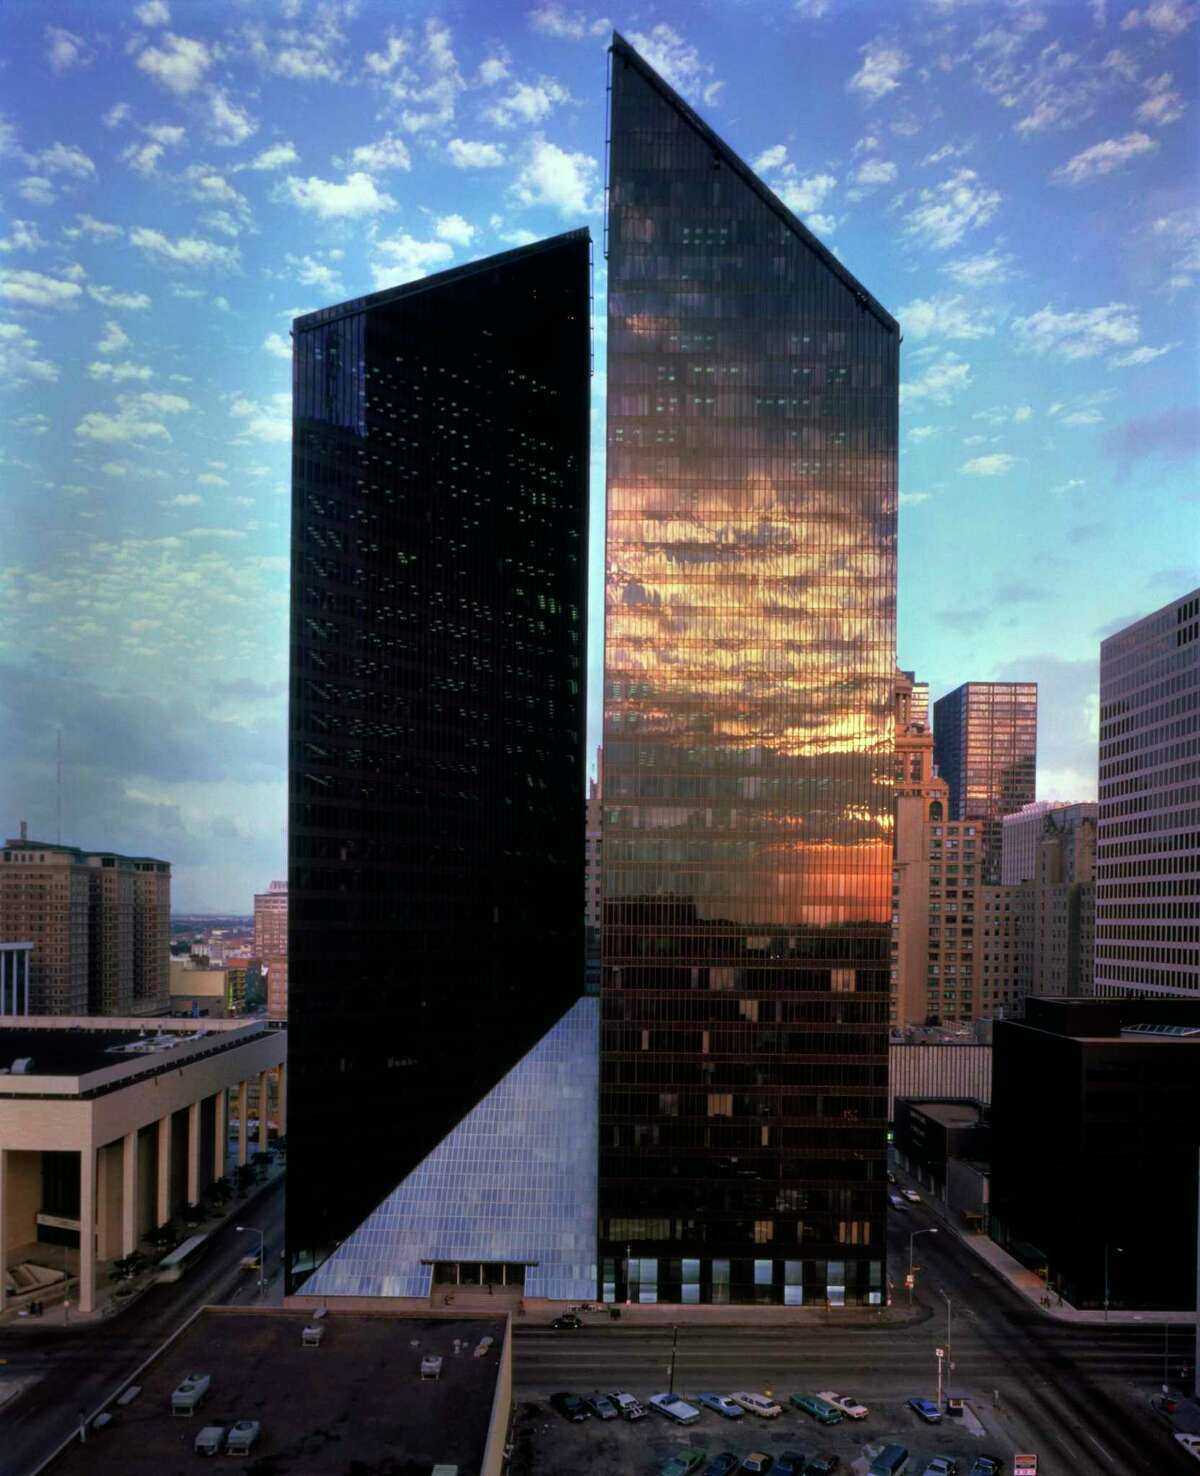 """Houston's Pennzoil Place, developed by Hines and designed by architects John Burgee and the late Philip Johnson, was declared the """"Building of the Decade"""" by New York Times architecture critic Ada Louise Huxtable in 1975."""